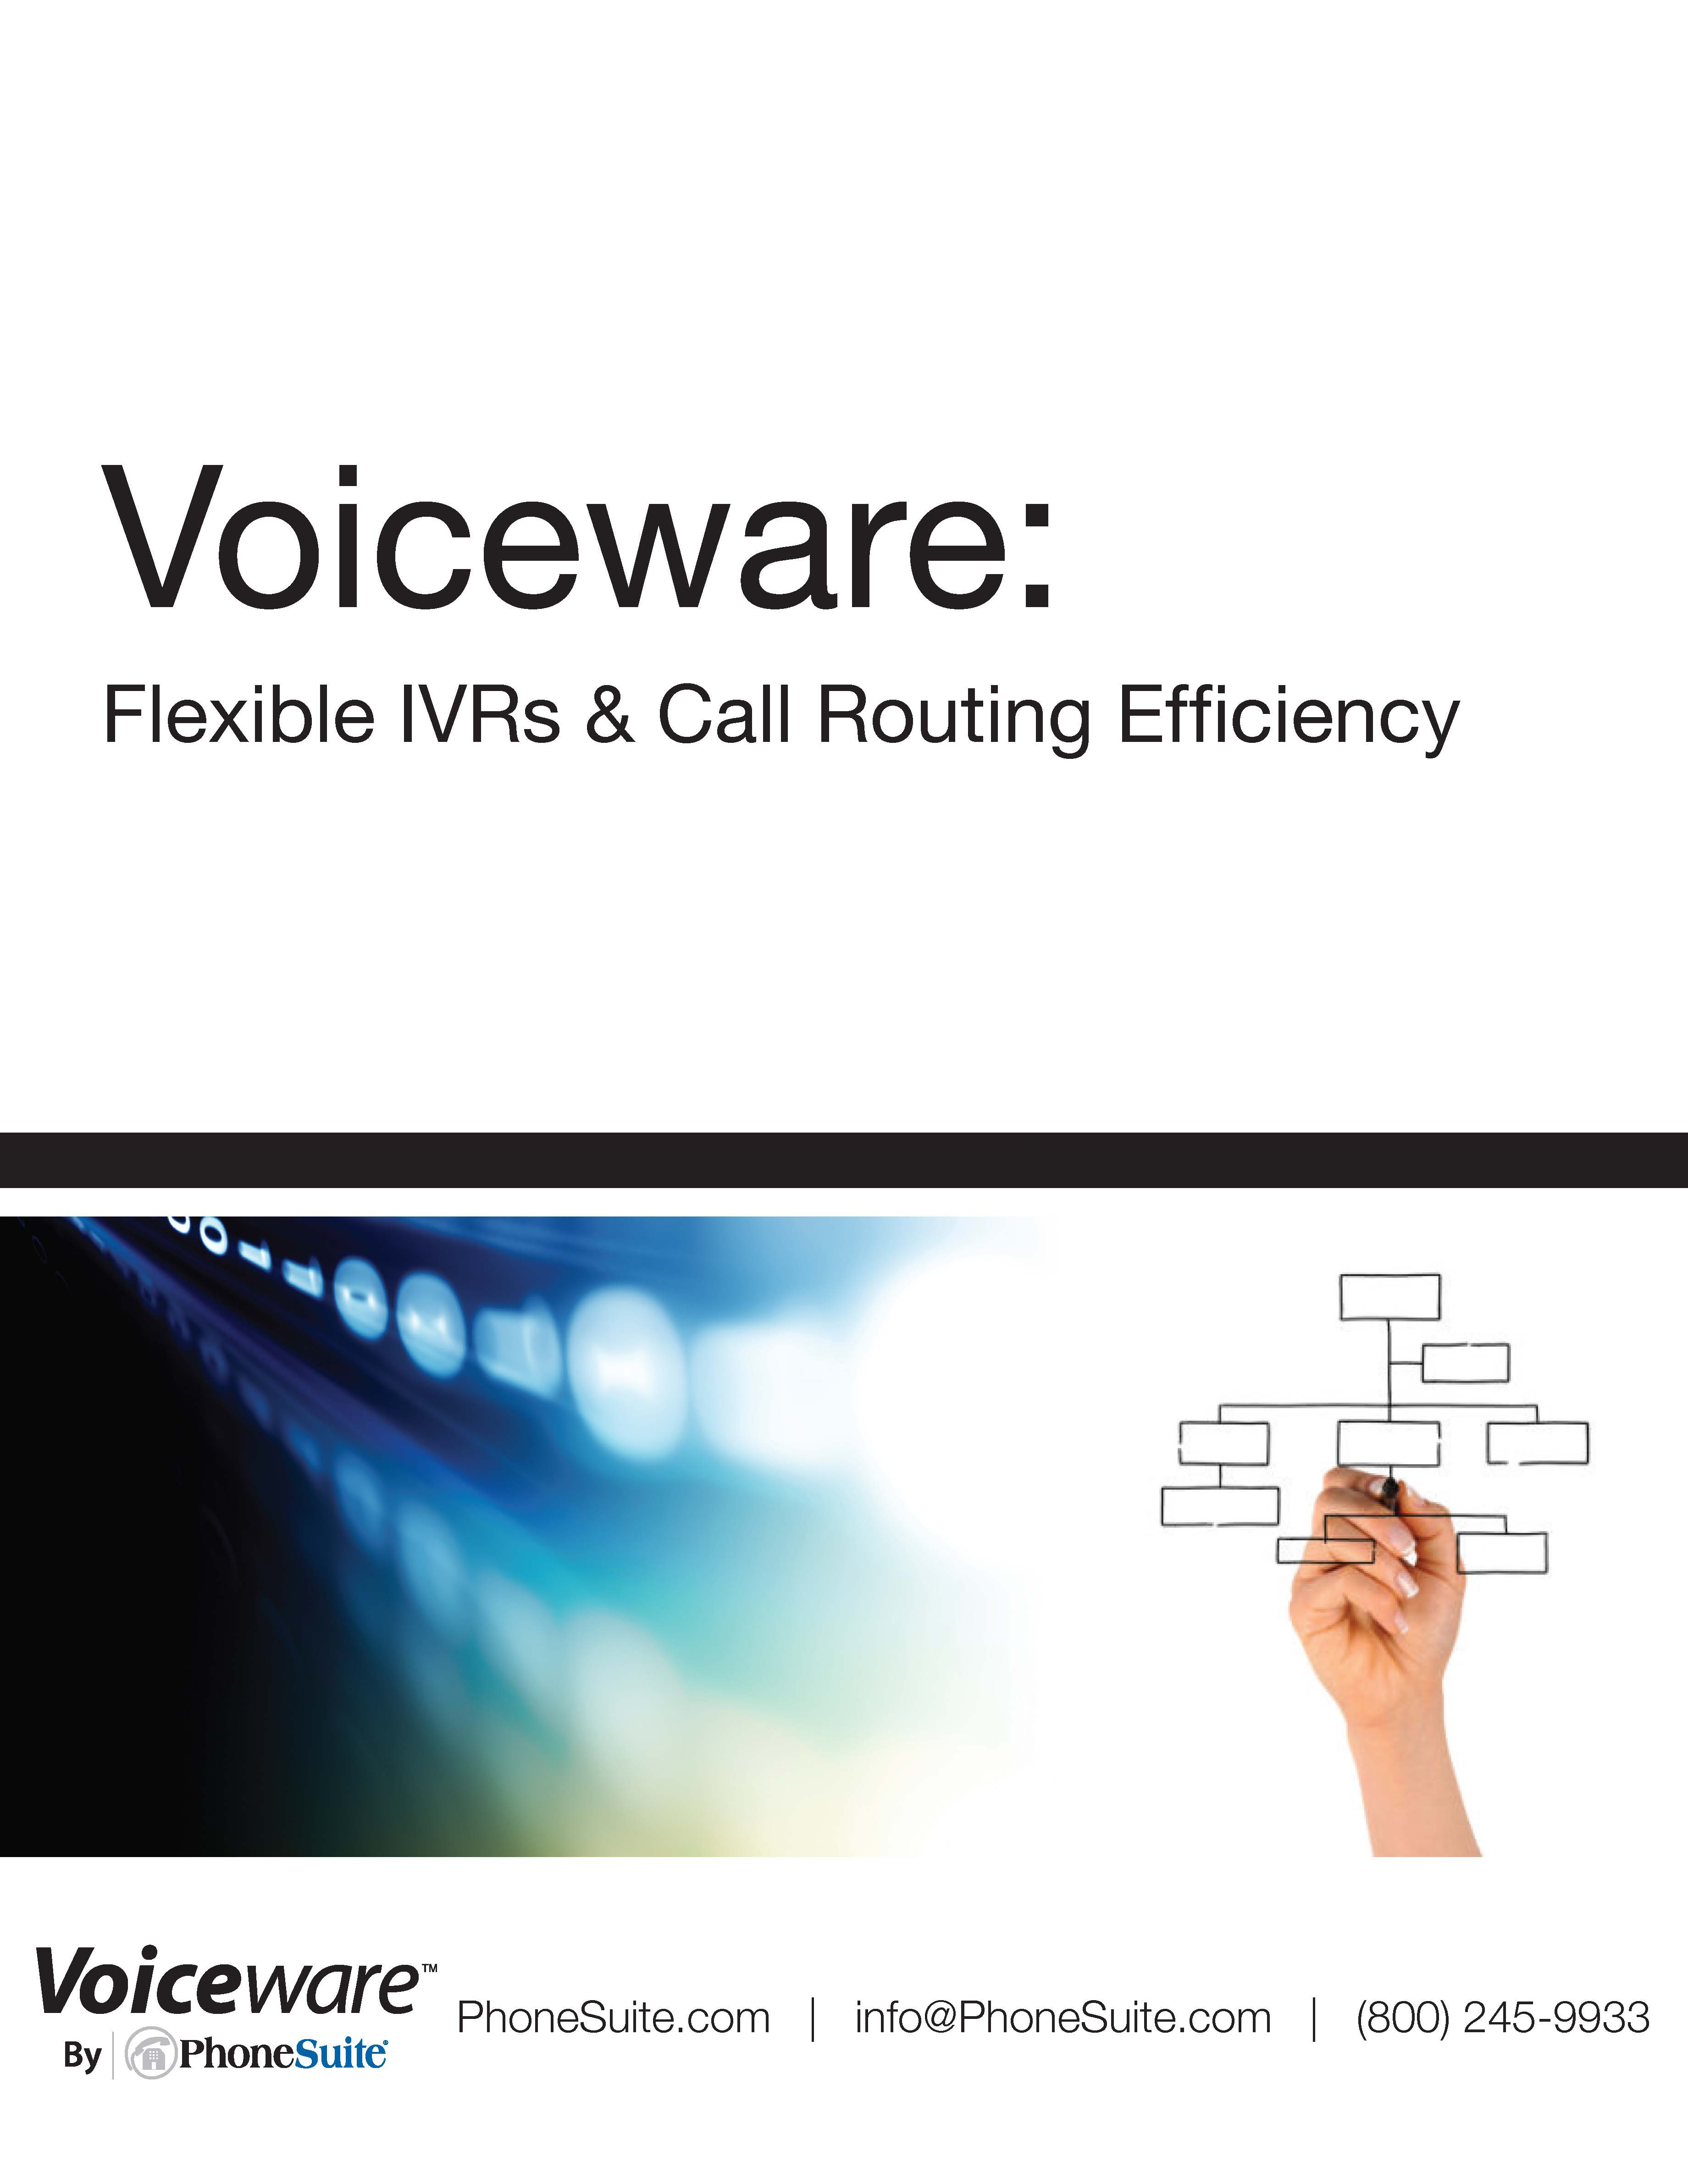 VOICEWARE WHITEPAPER: Flexible IVRs & Call Routing Efficiency